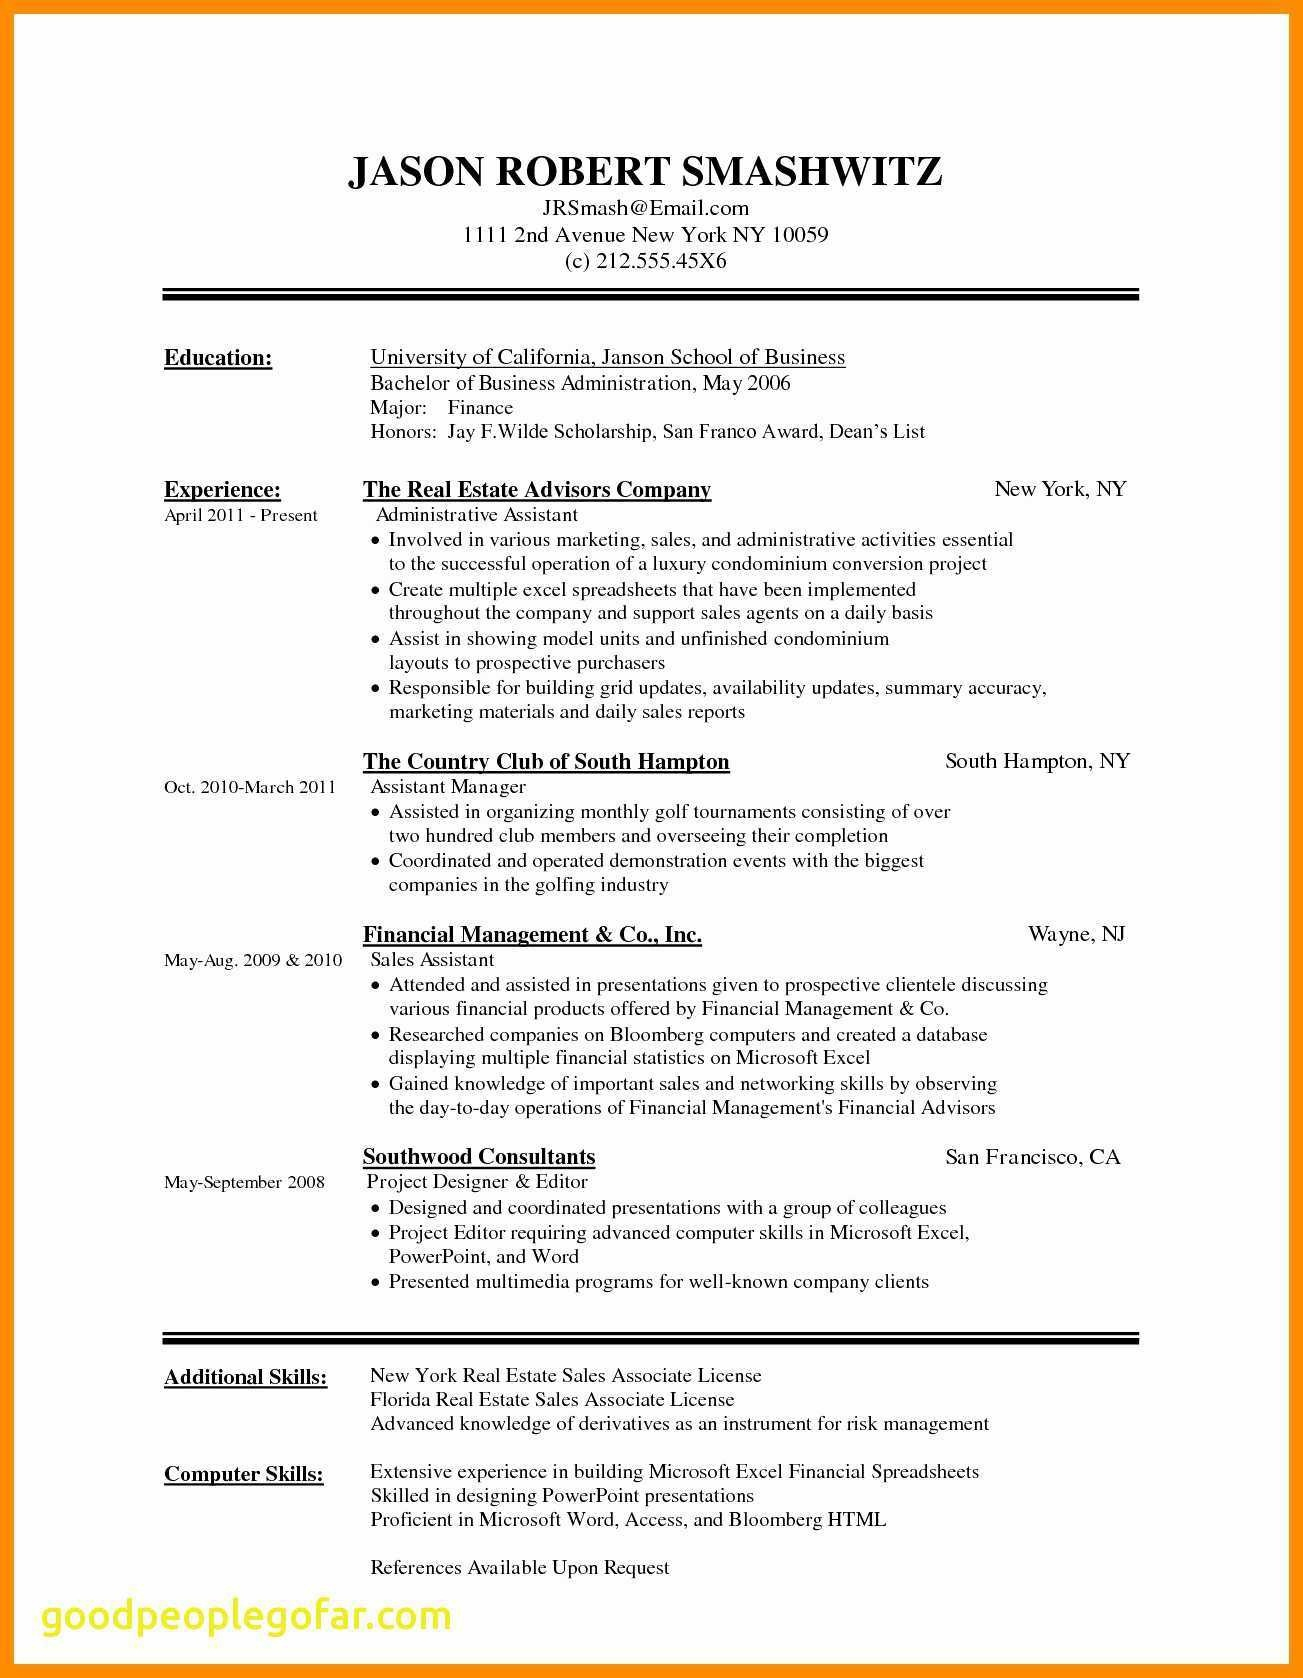 Cosmetology Resume Skills - Entry Level Cosmetologist Resume Examples Fresh Resume Templates for